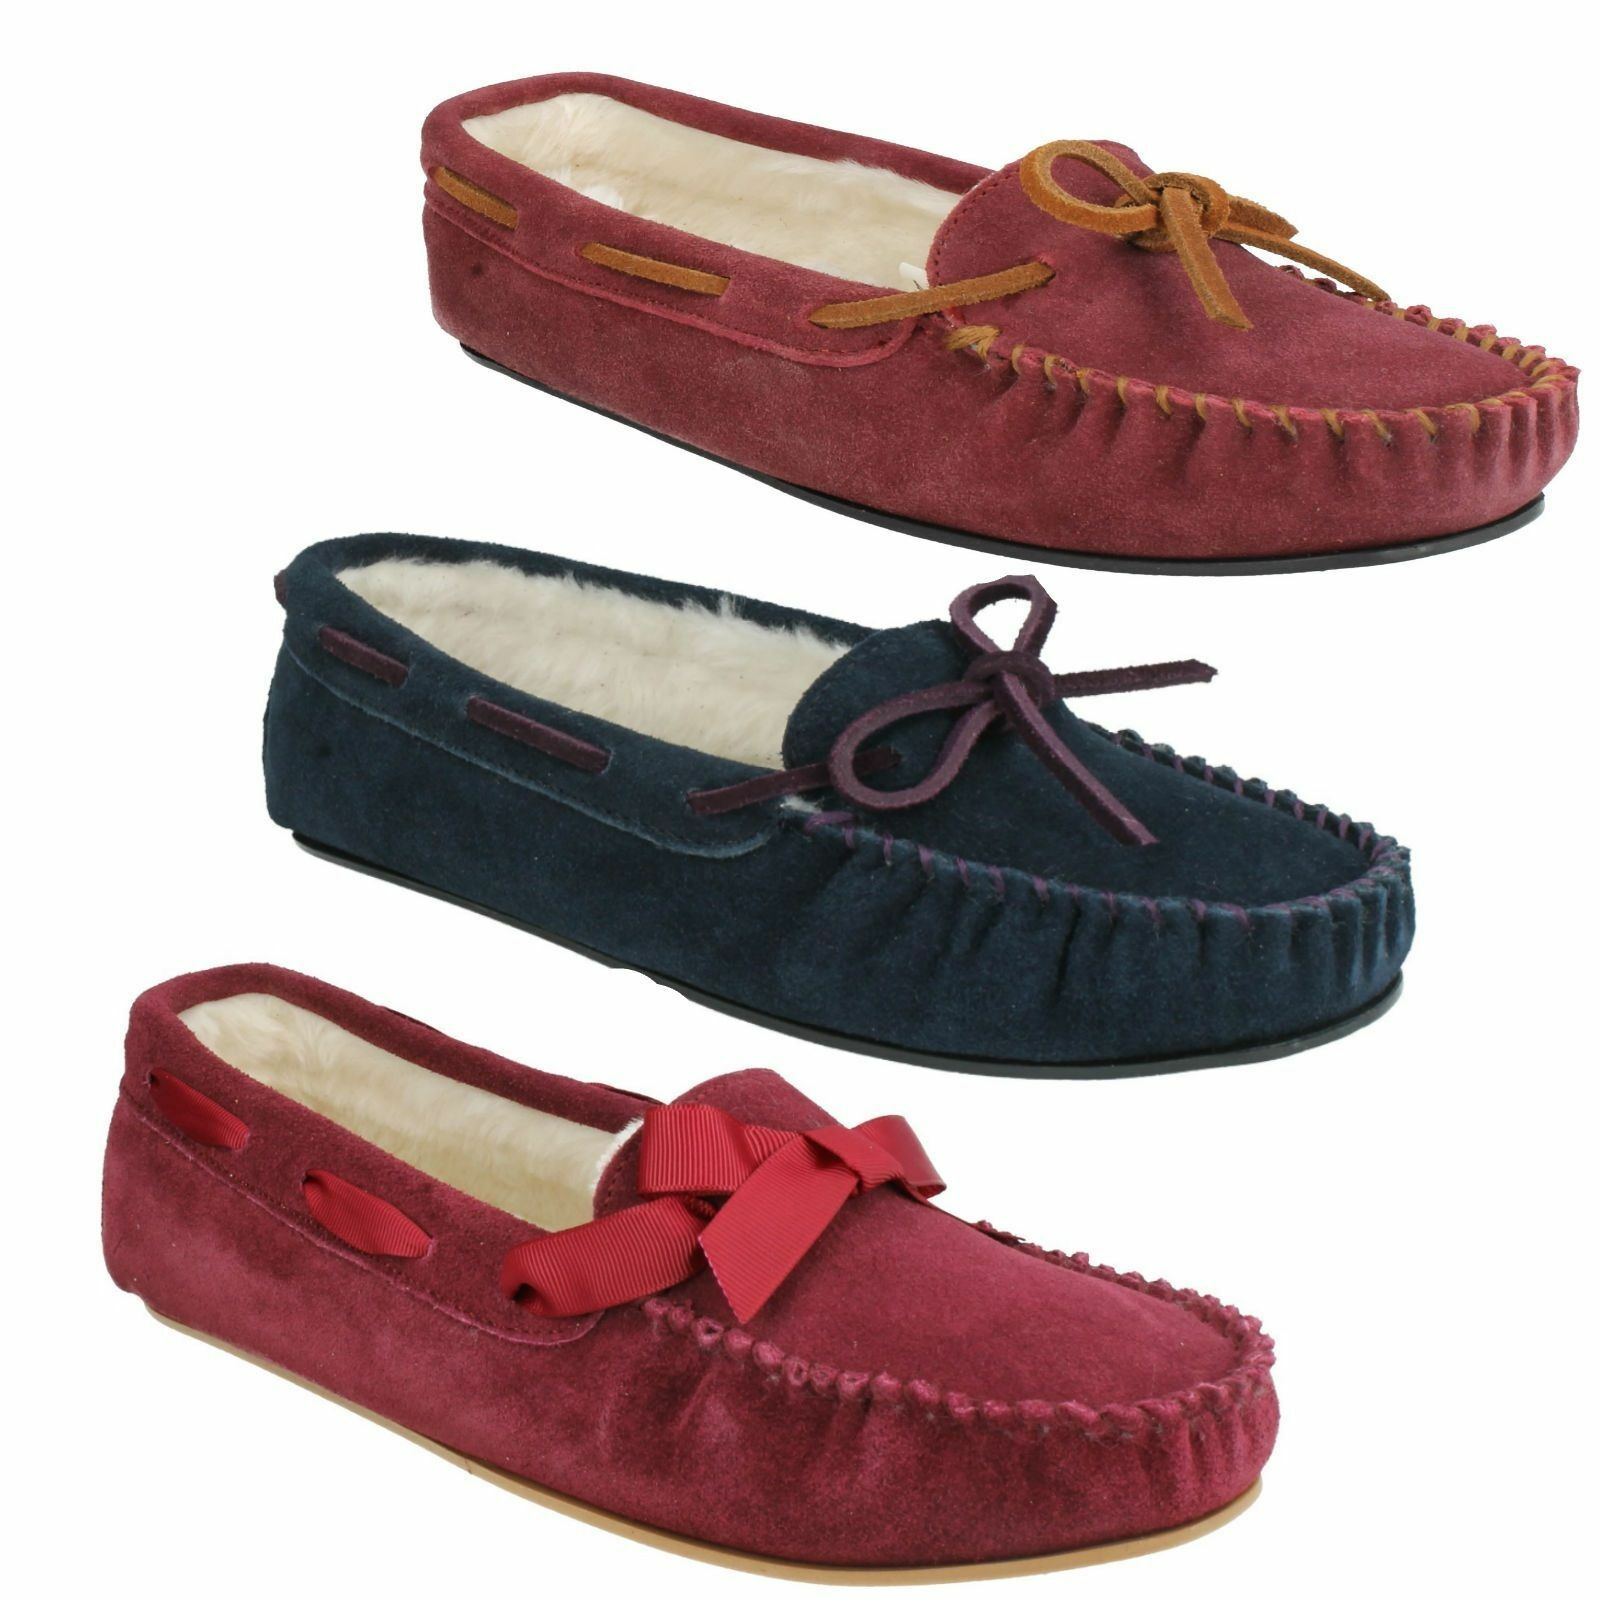 LADIES  K BY CLARKS WAKE ME SOFT FUR MOCCASIN SUEDE LEATHER INDOOR WARM SLIPPERS